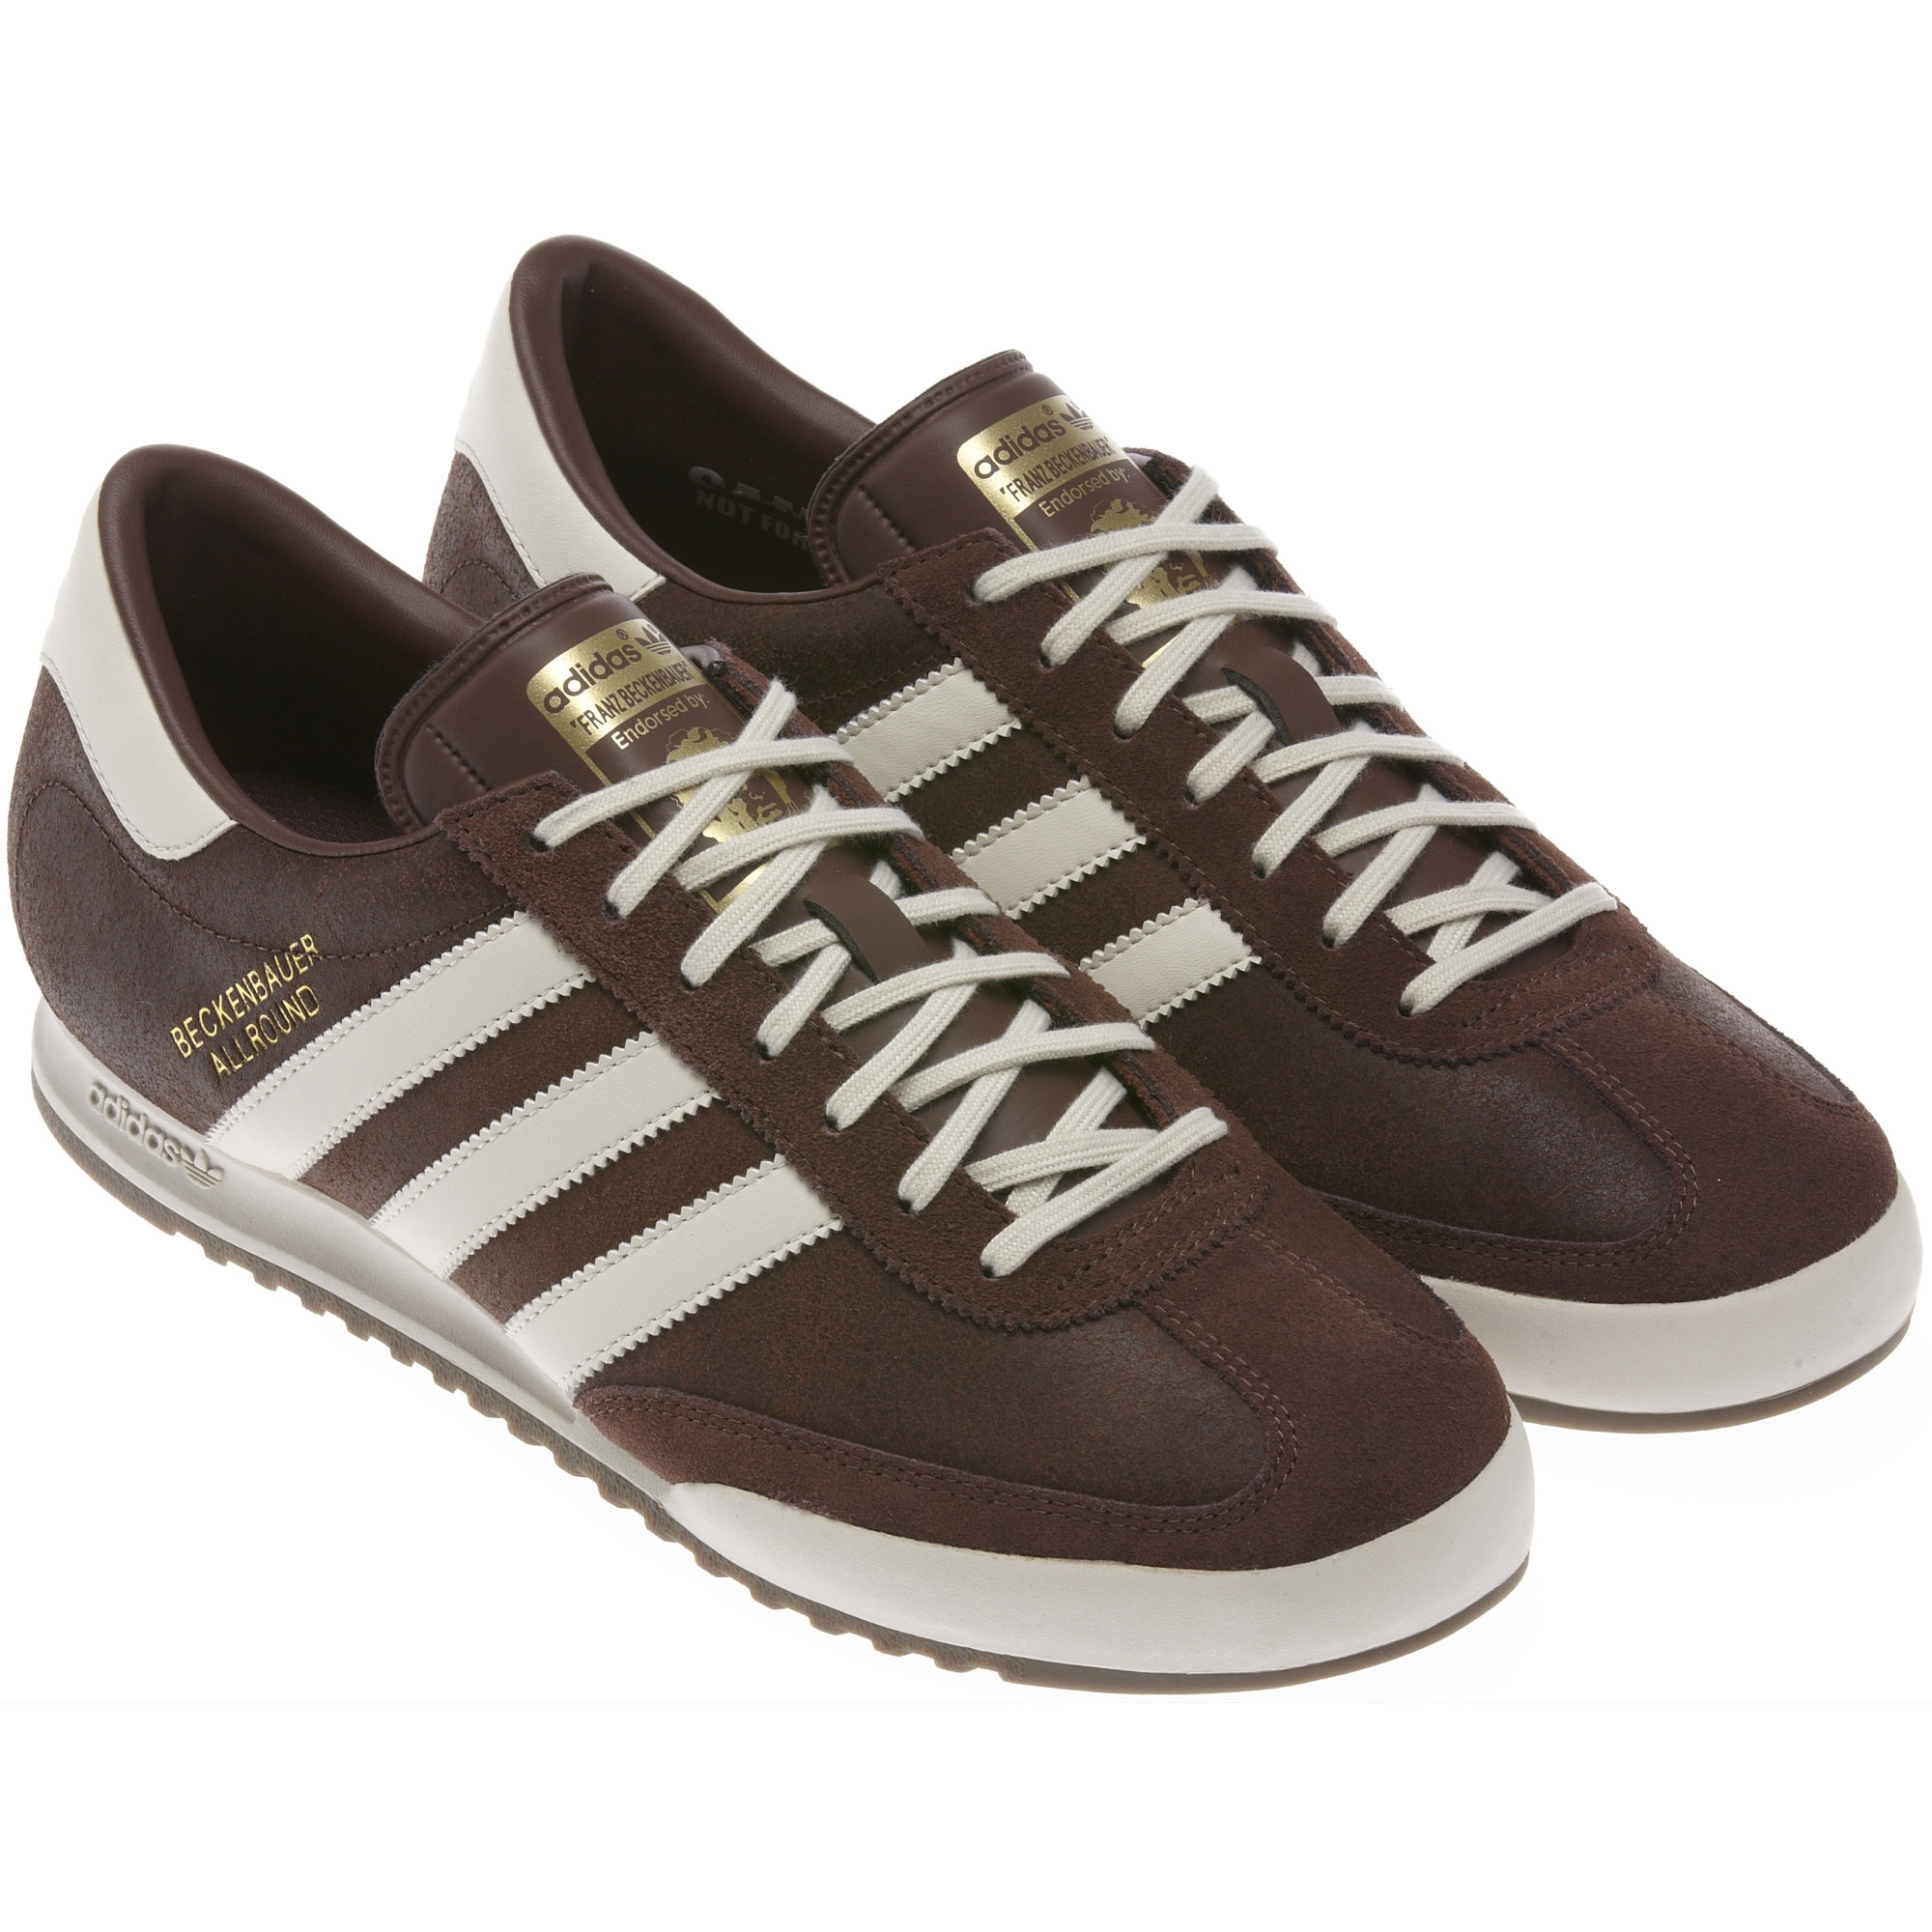 What Is Leather Made Of >> Adidas Beckenbauer Allround - St Auburn / Gum / Bliss